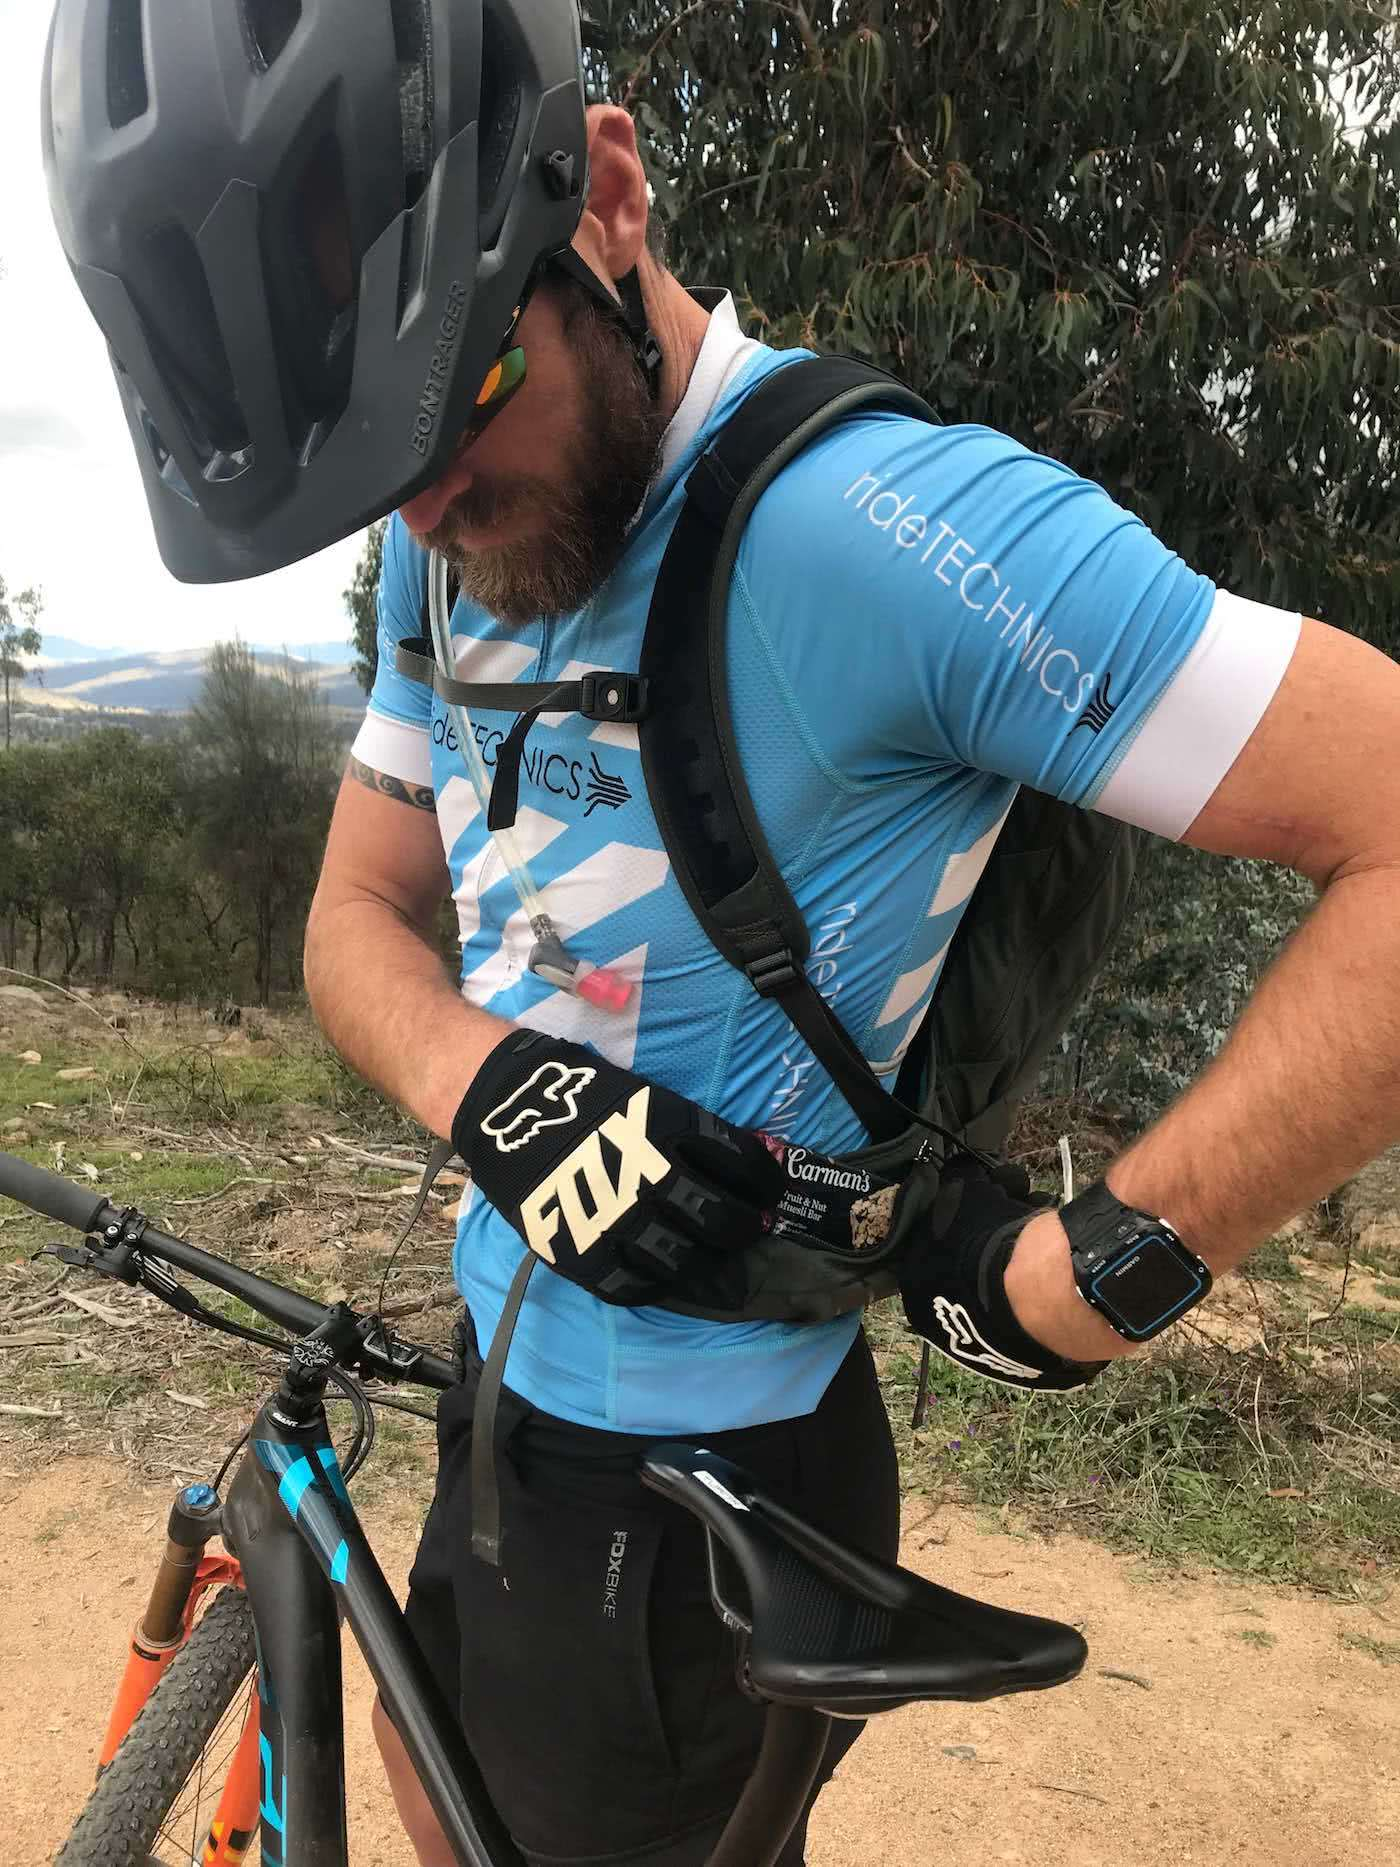 Osprey Raptor 10 Riding Pack // Gear Review by Rowan Beggs-French cycling backpack, rock garden, mountain biking, backpack detail, snack pocket